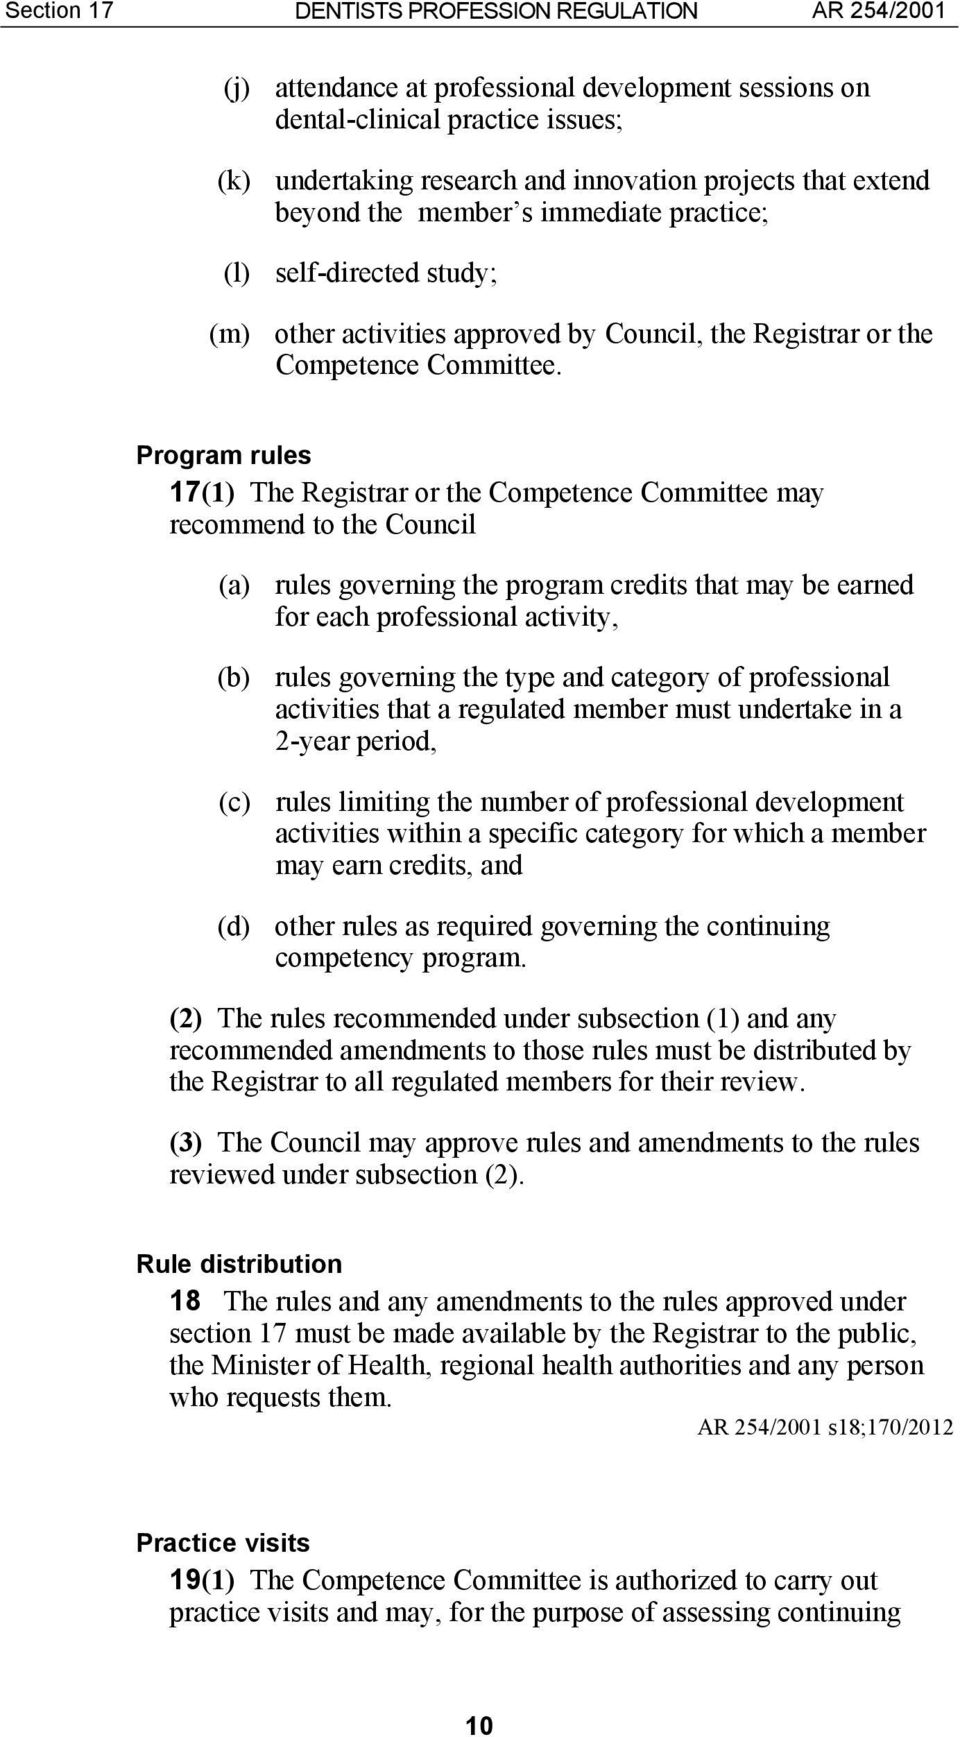 Program rules 17(1) The Registrar or the Competence Committee may recommend to the Council (a) rules governing the program credits that may be earned for each professional activity, (b) rules